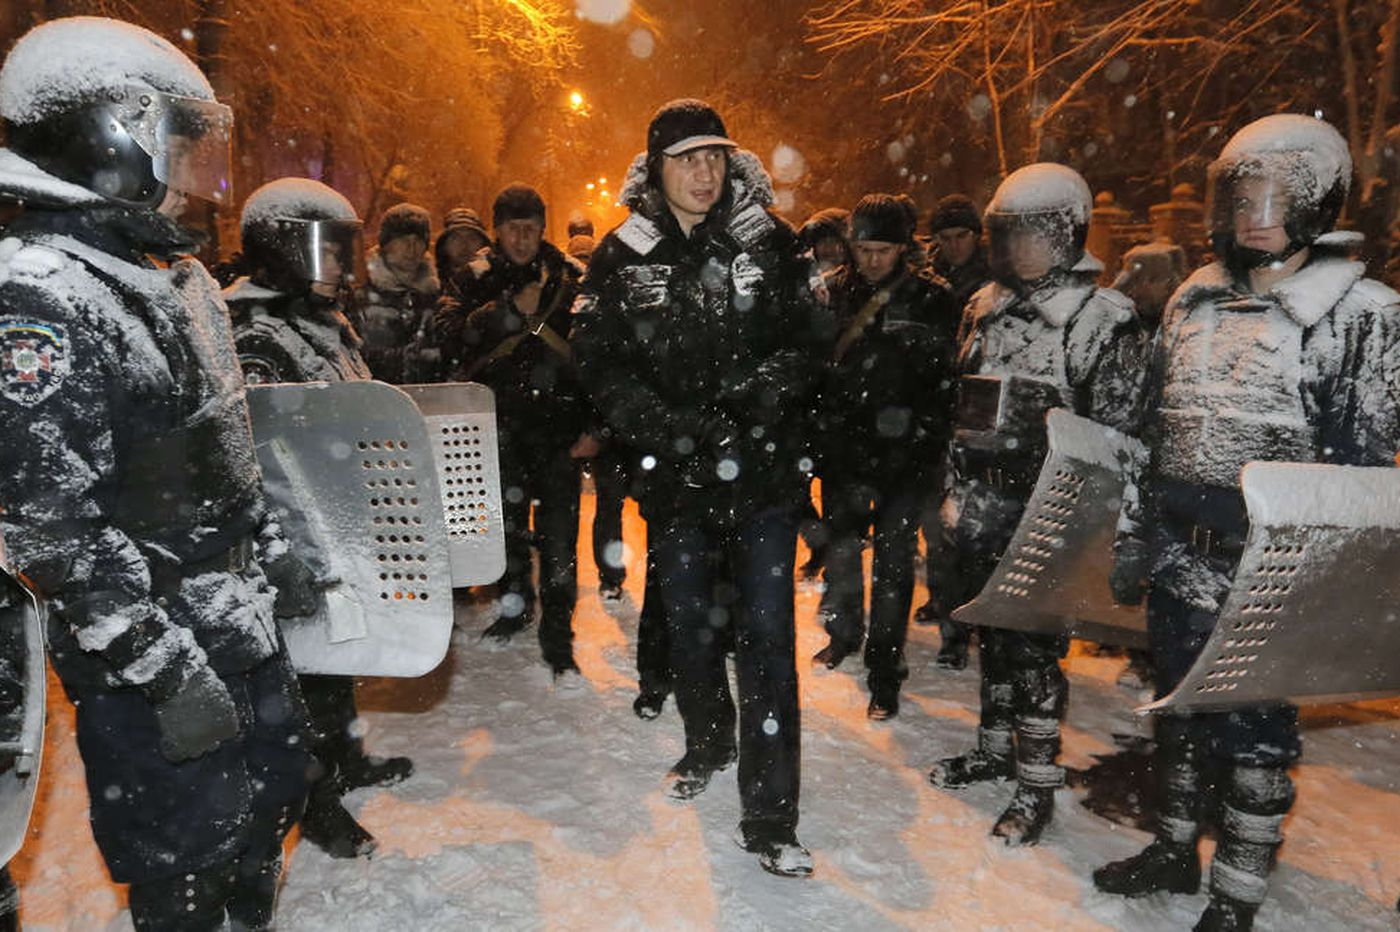 Riot troops storm opposition offices in Ukraine